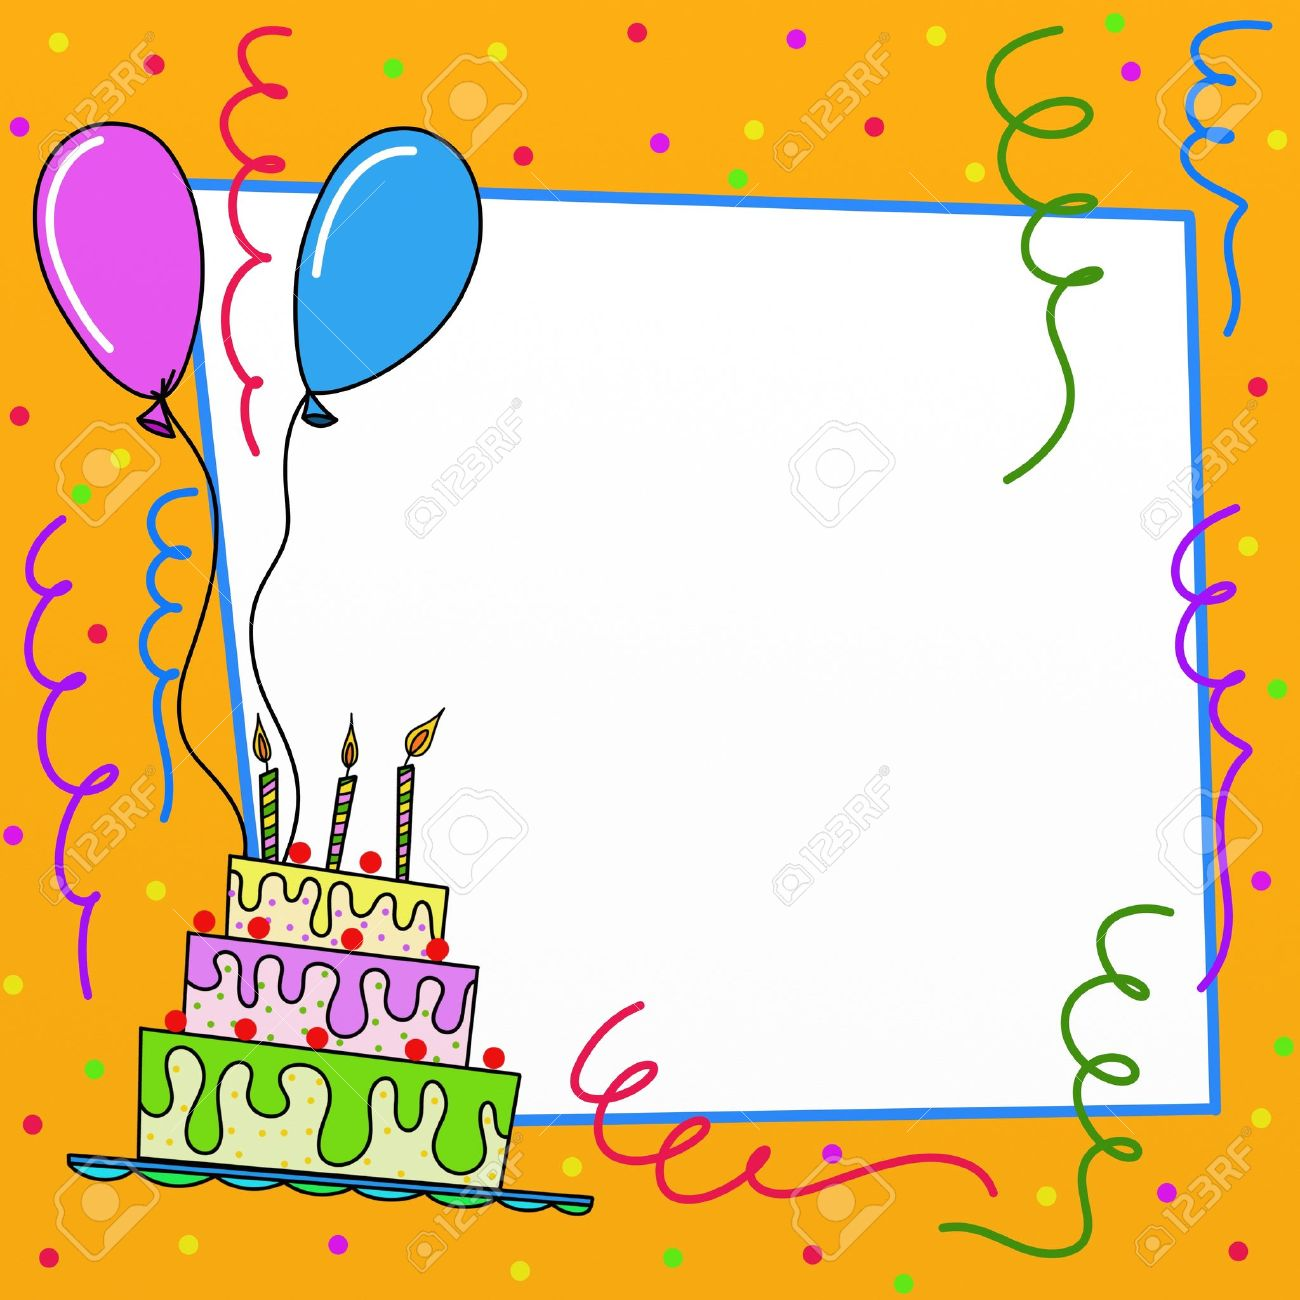 Birthday cake stock photo picture and royalty free image image birthday cake stock photo 8696905 bookmarktalkfo Choice Image